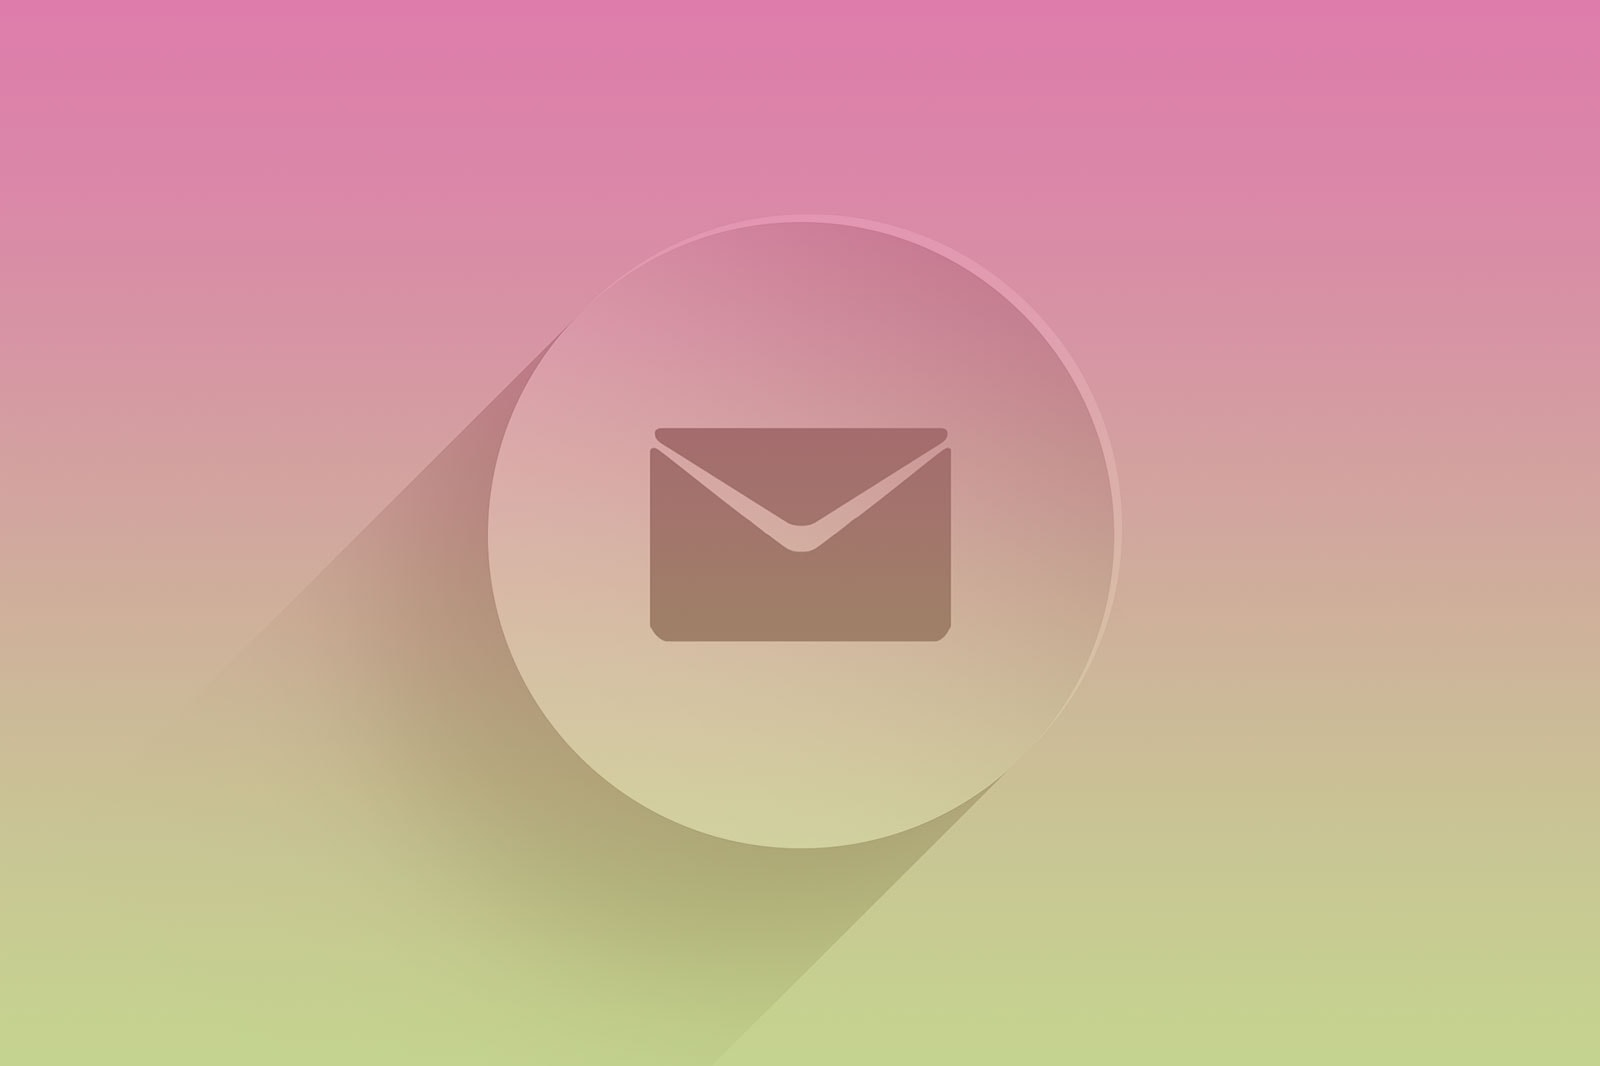 5 Benefits of Email Marketing You Should Be Thinking About in 2019